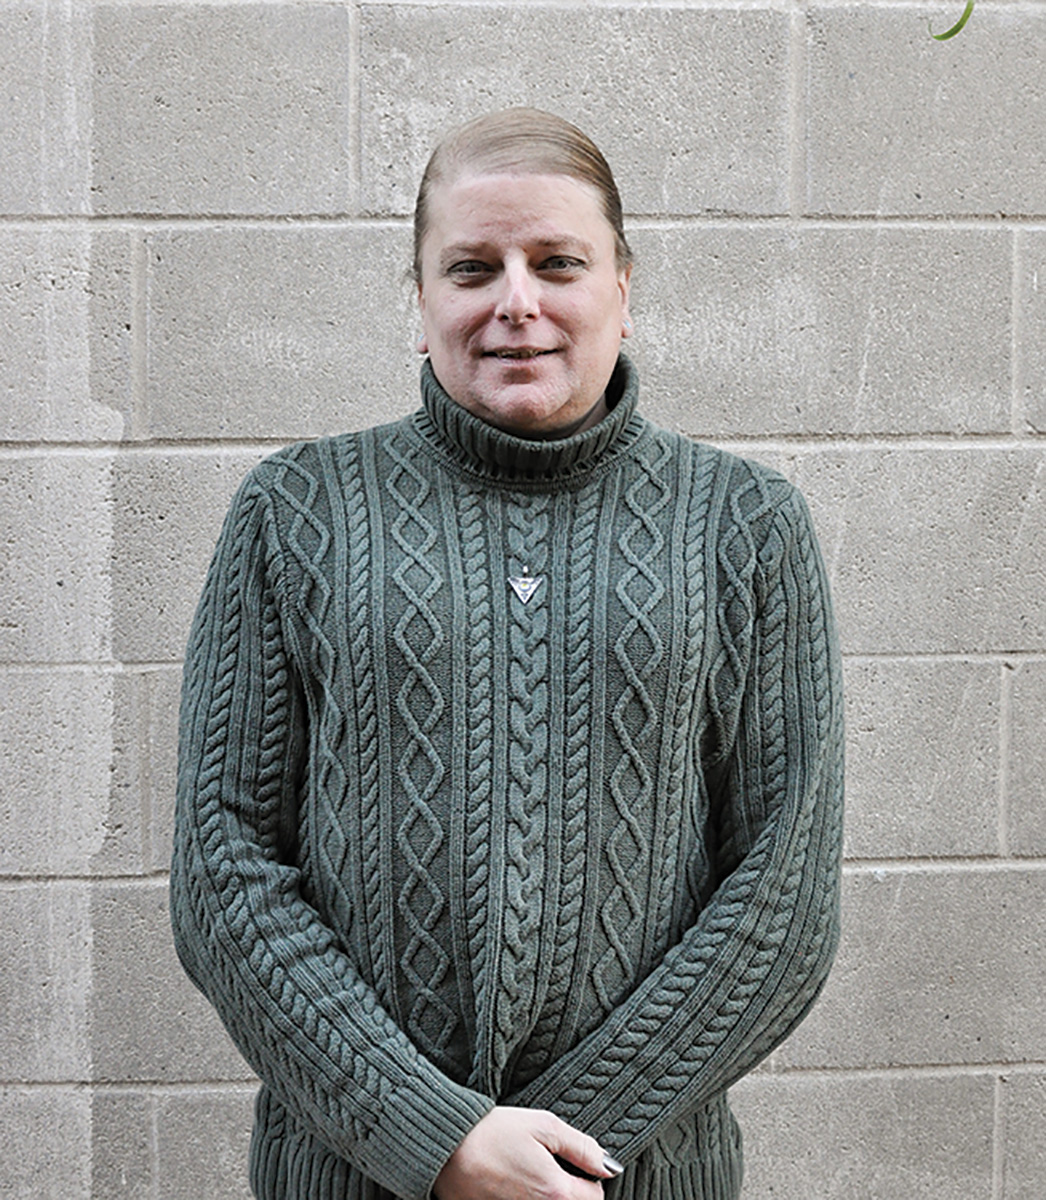 Zoe Roberts becomes first openly transgender county supervisor for Eau Claire County.